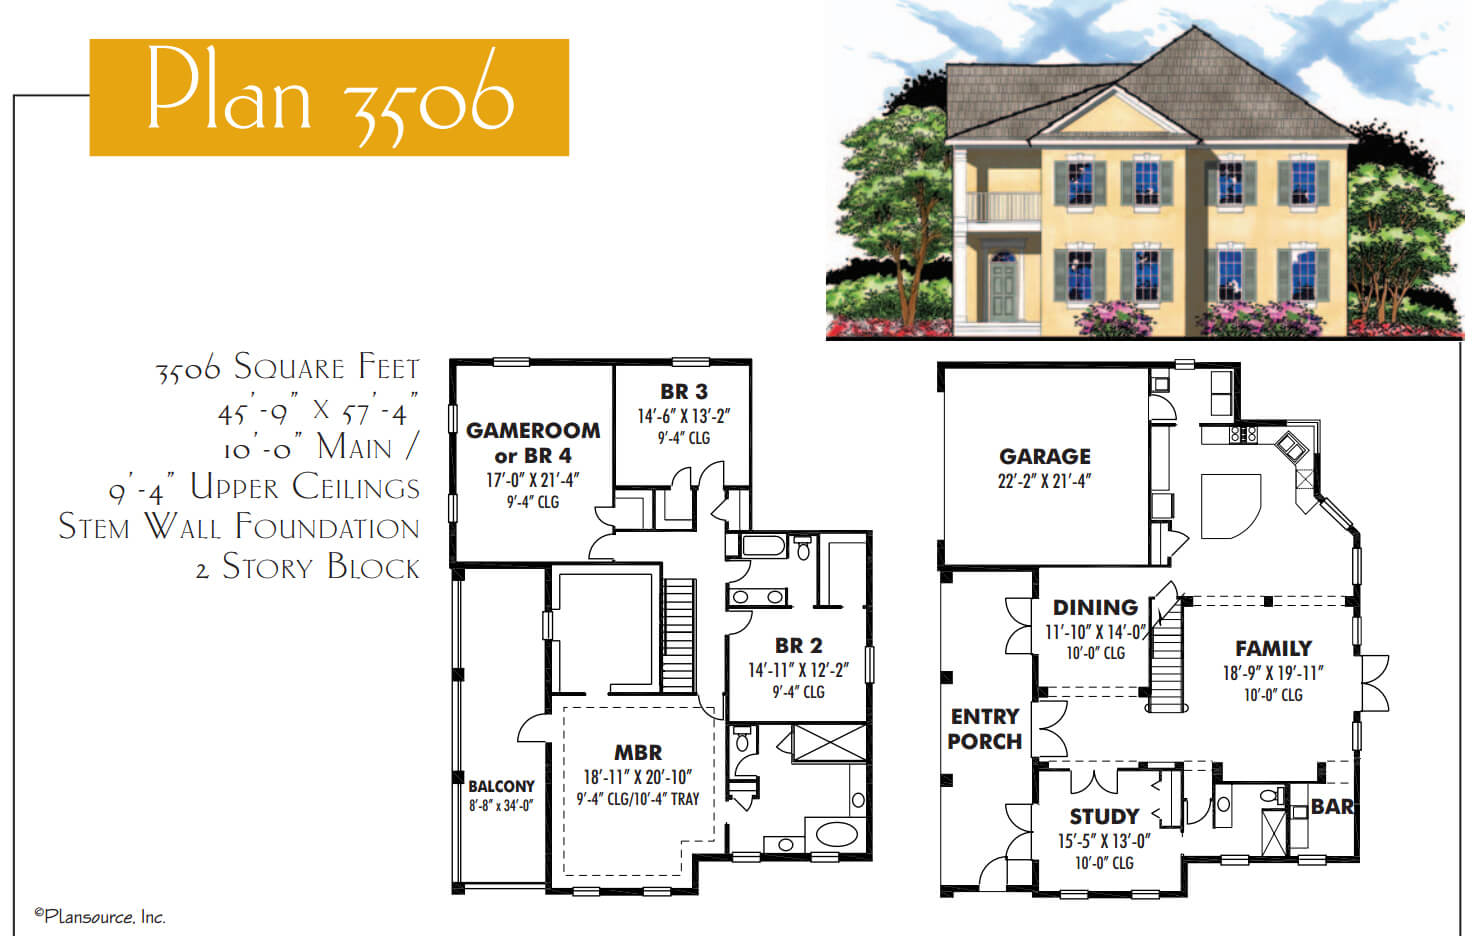 Floor Plans,3,501 SQ FT TO 4,000 SQ FT,1094